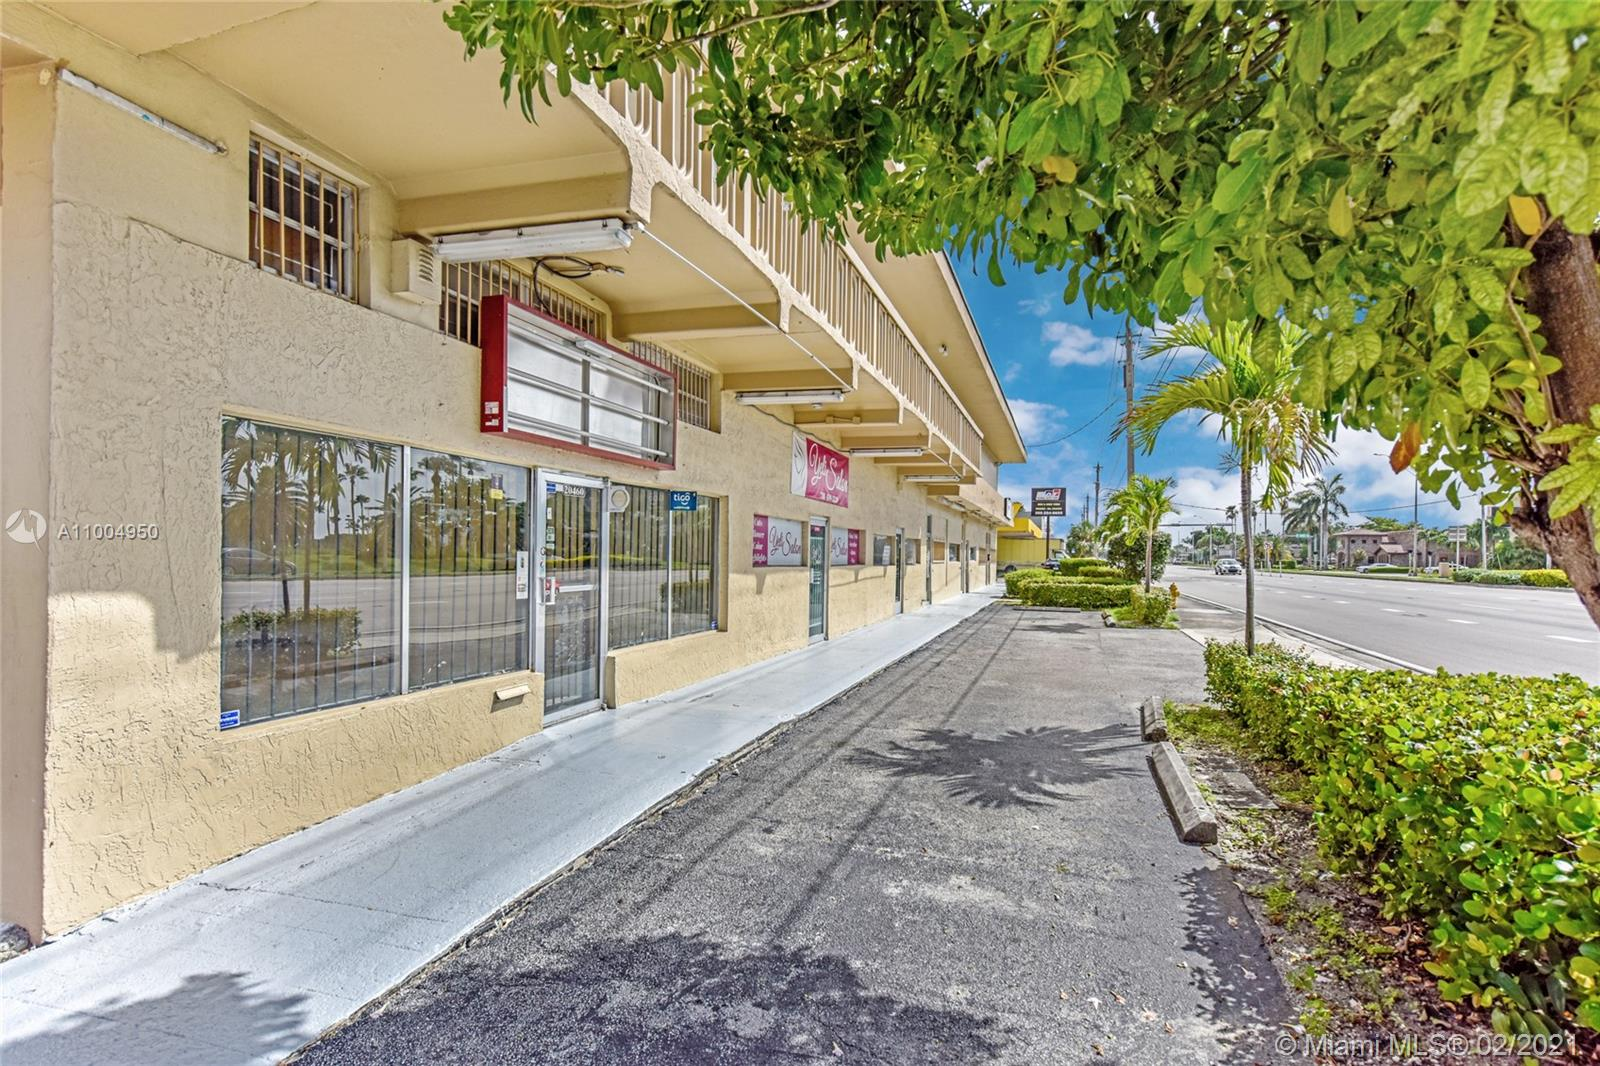 Located in the heart of Cutler Bay, 20462 S.Dixie Hwy includes 12 retail/office spaces (1st floor retail units at $25/sf MG include 680, 650sf and 680sf --- 2nd floor office suites at $20/sf MG include 1,019sf and 1,334sf) within a 2-story building that sits on 12,500 SF of land, adjacent to a hard-corner and across from Southland Mall. Moreover, the property sits right on the Rapid Transit Busway, just 50 feet away from a $30 Million Rapid Transit Station that has been approved for construction and will move thousands of people each week through this location. Share the building with great neighbors that have been in place for years, including a wonderful Peruvian restaurant, hair salon, tax filing agency, and Italian suit store.